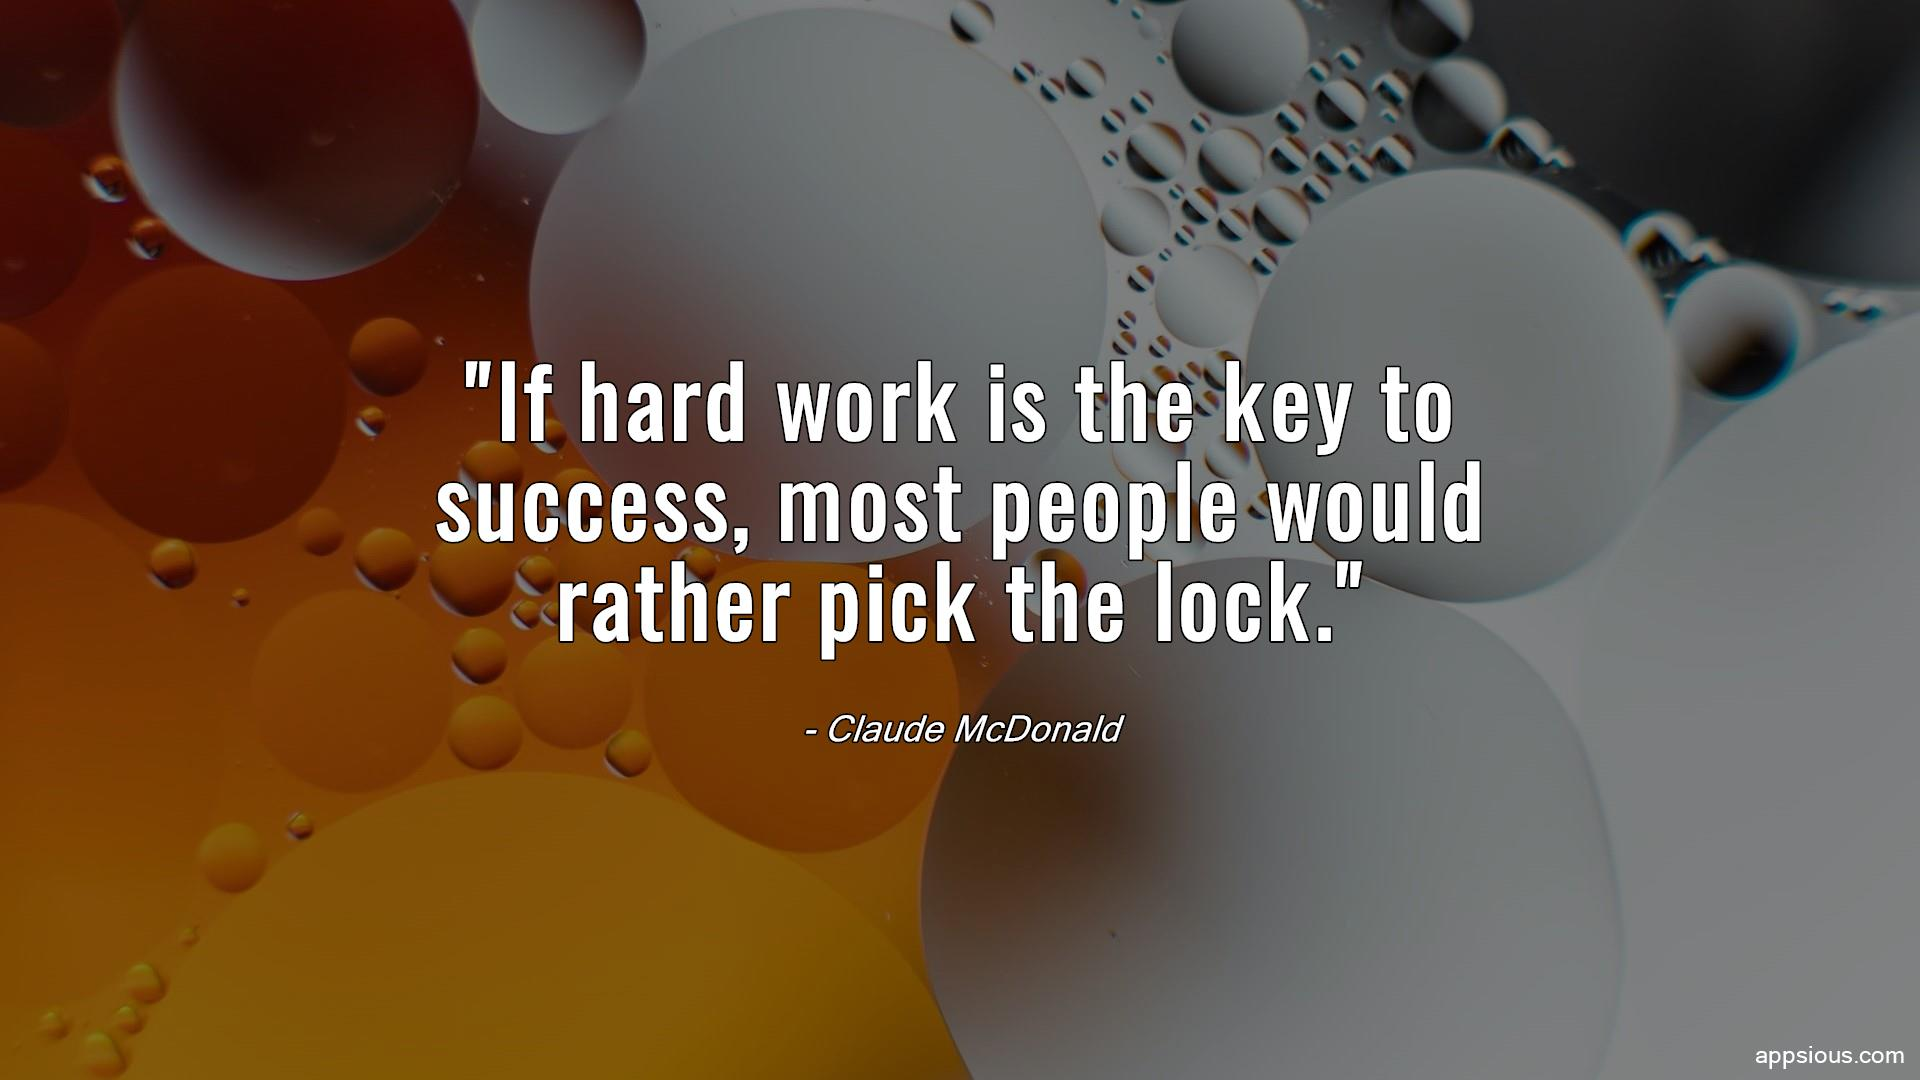 If hard work is the key to success, most people would rather pick the lock.